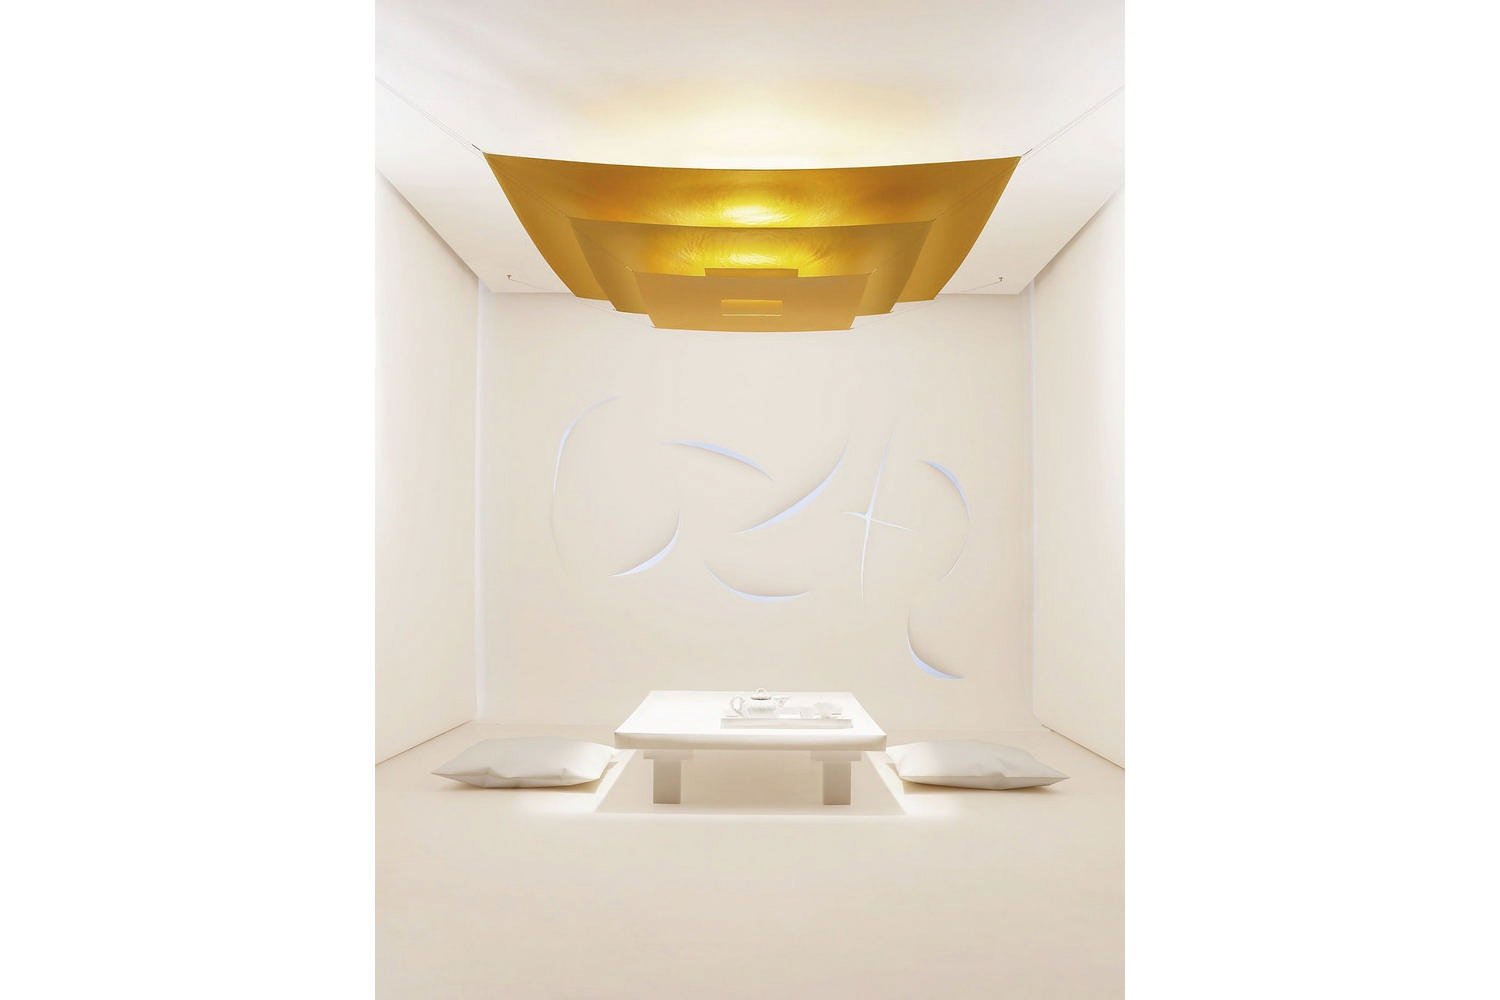 Luxury Pure Ceiling Lamp by Ingo Maurer und Team for Ingo Maurer